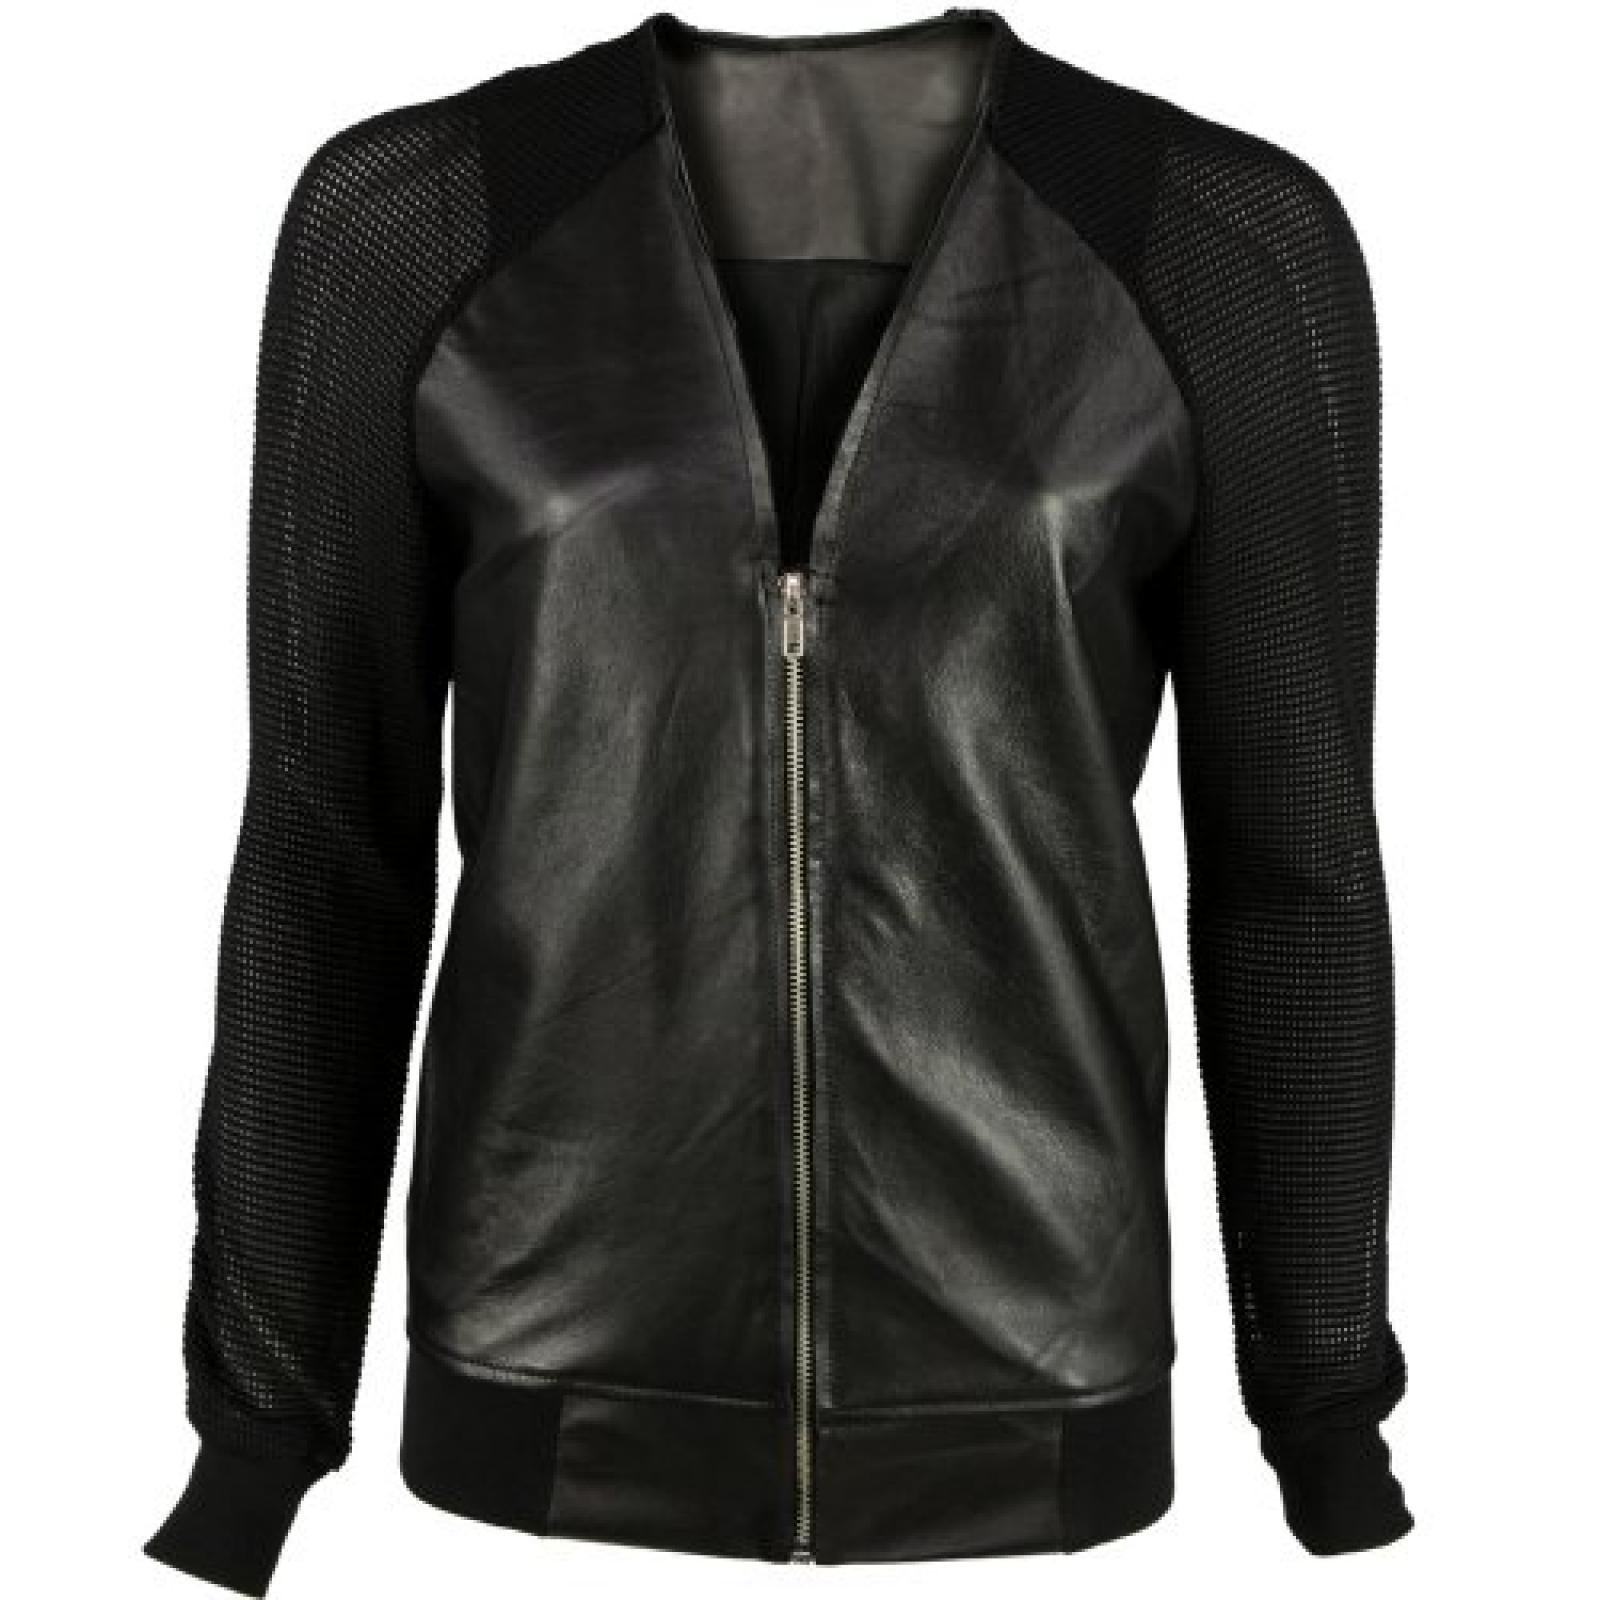 VIPARO Black Varsity Leather Jacket with Mesh Lightweight Netted Sleeves - Rodie